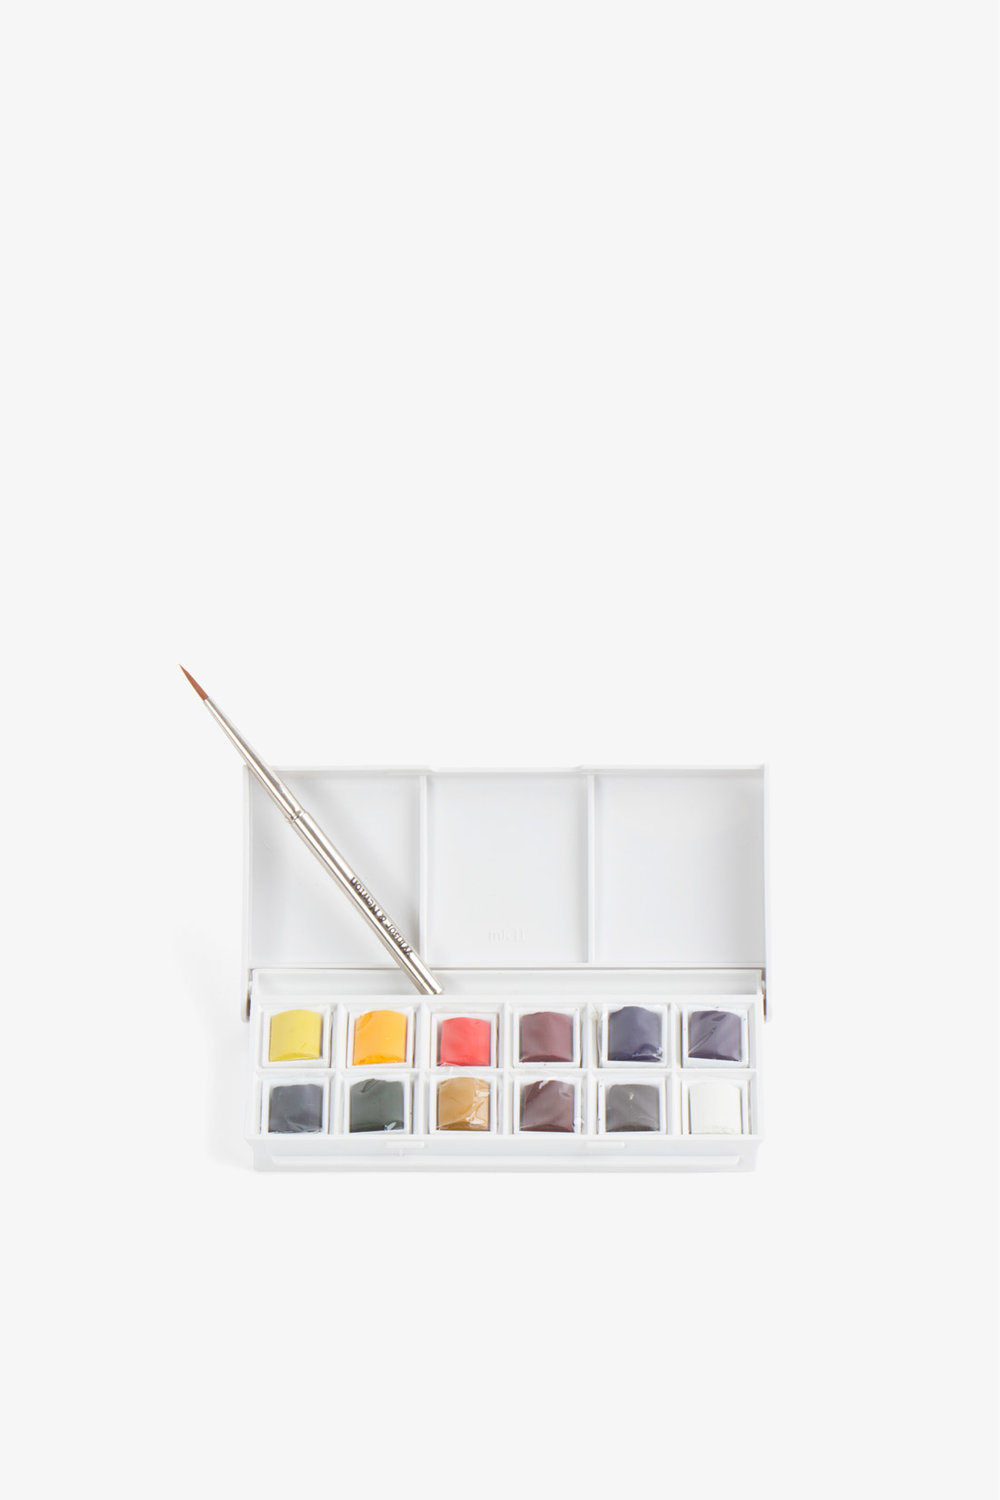 winsor-newton-watercolor-travel-kit-1-1jpg.jpg